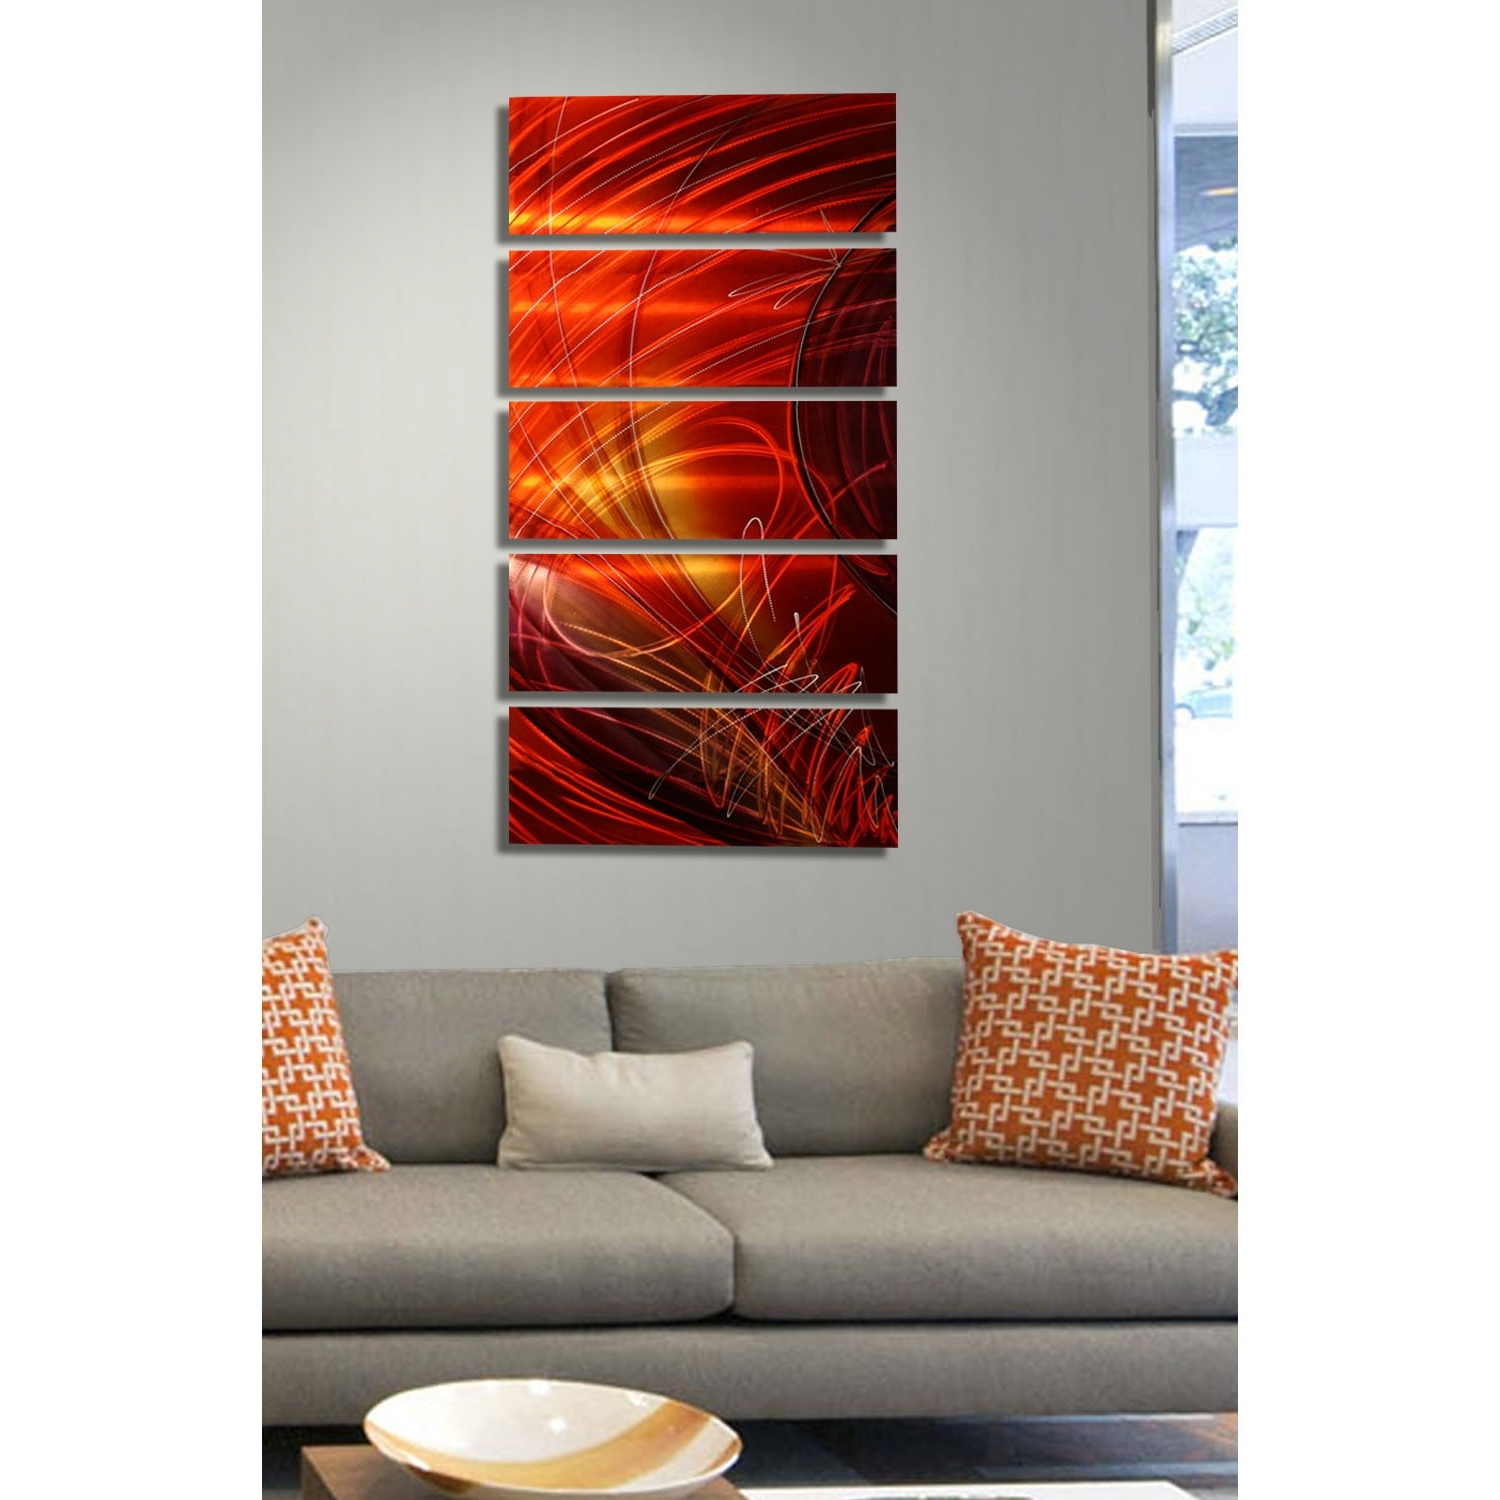 5 Panel Wall Art Within Latest Ruby Sky – Red, Gold And Purple Metal Wall Art – 5 Panel Wall Décor (Gallery 12 of 15)